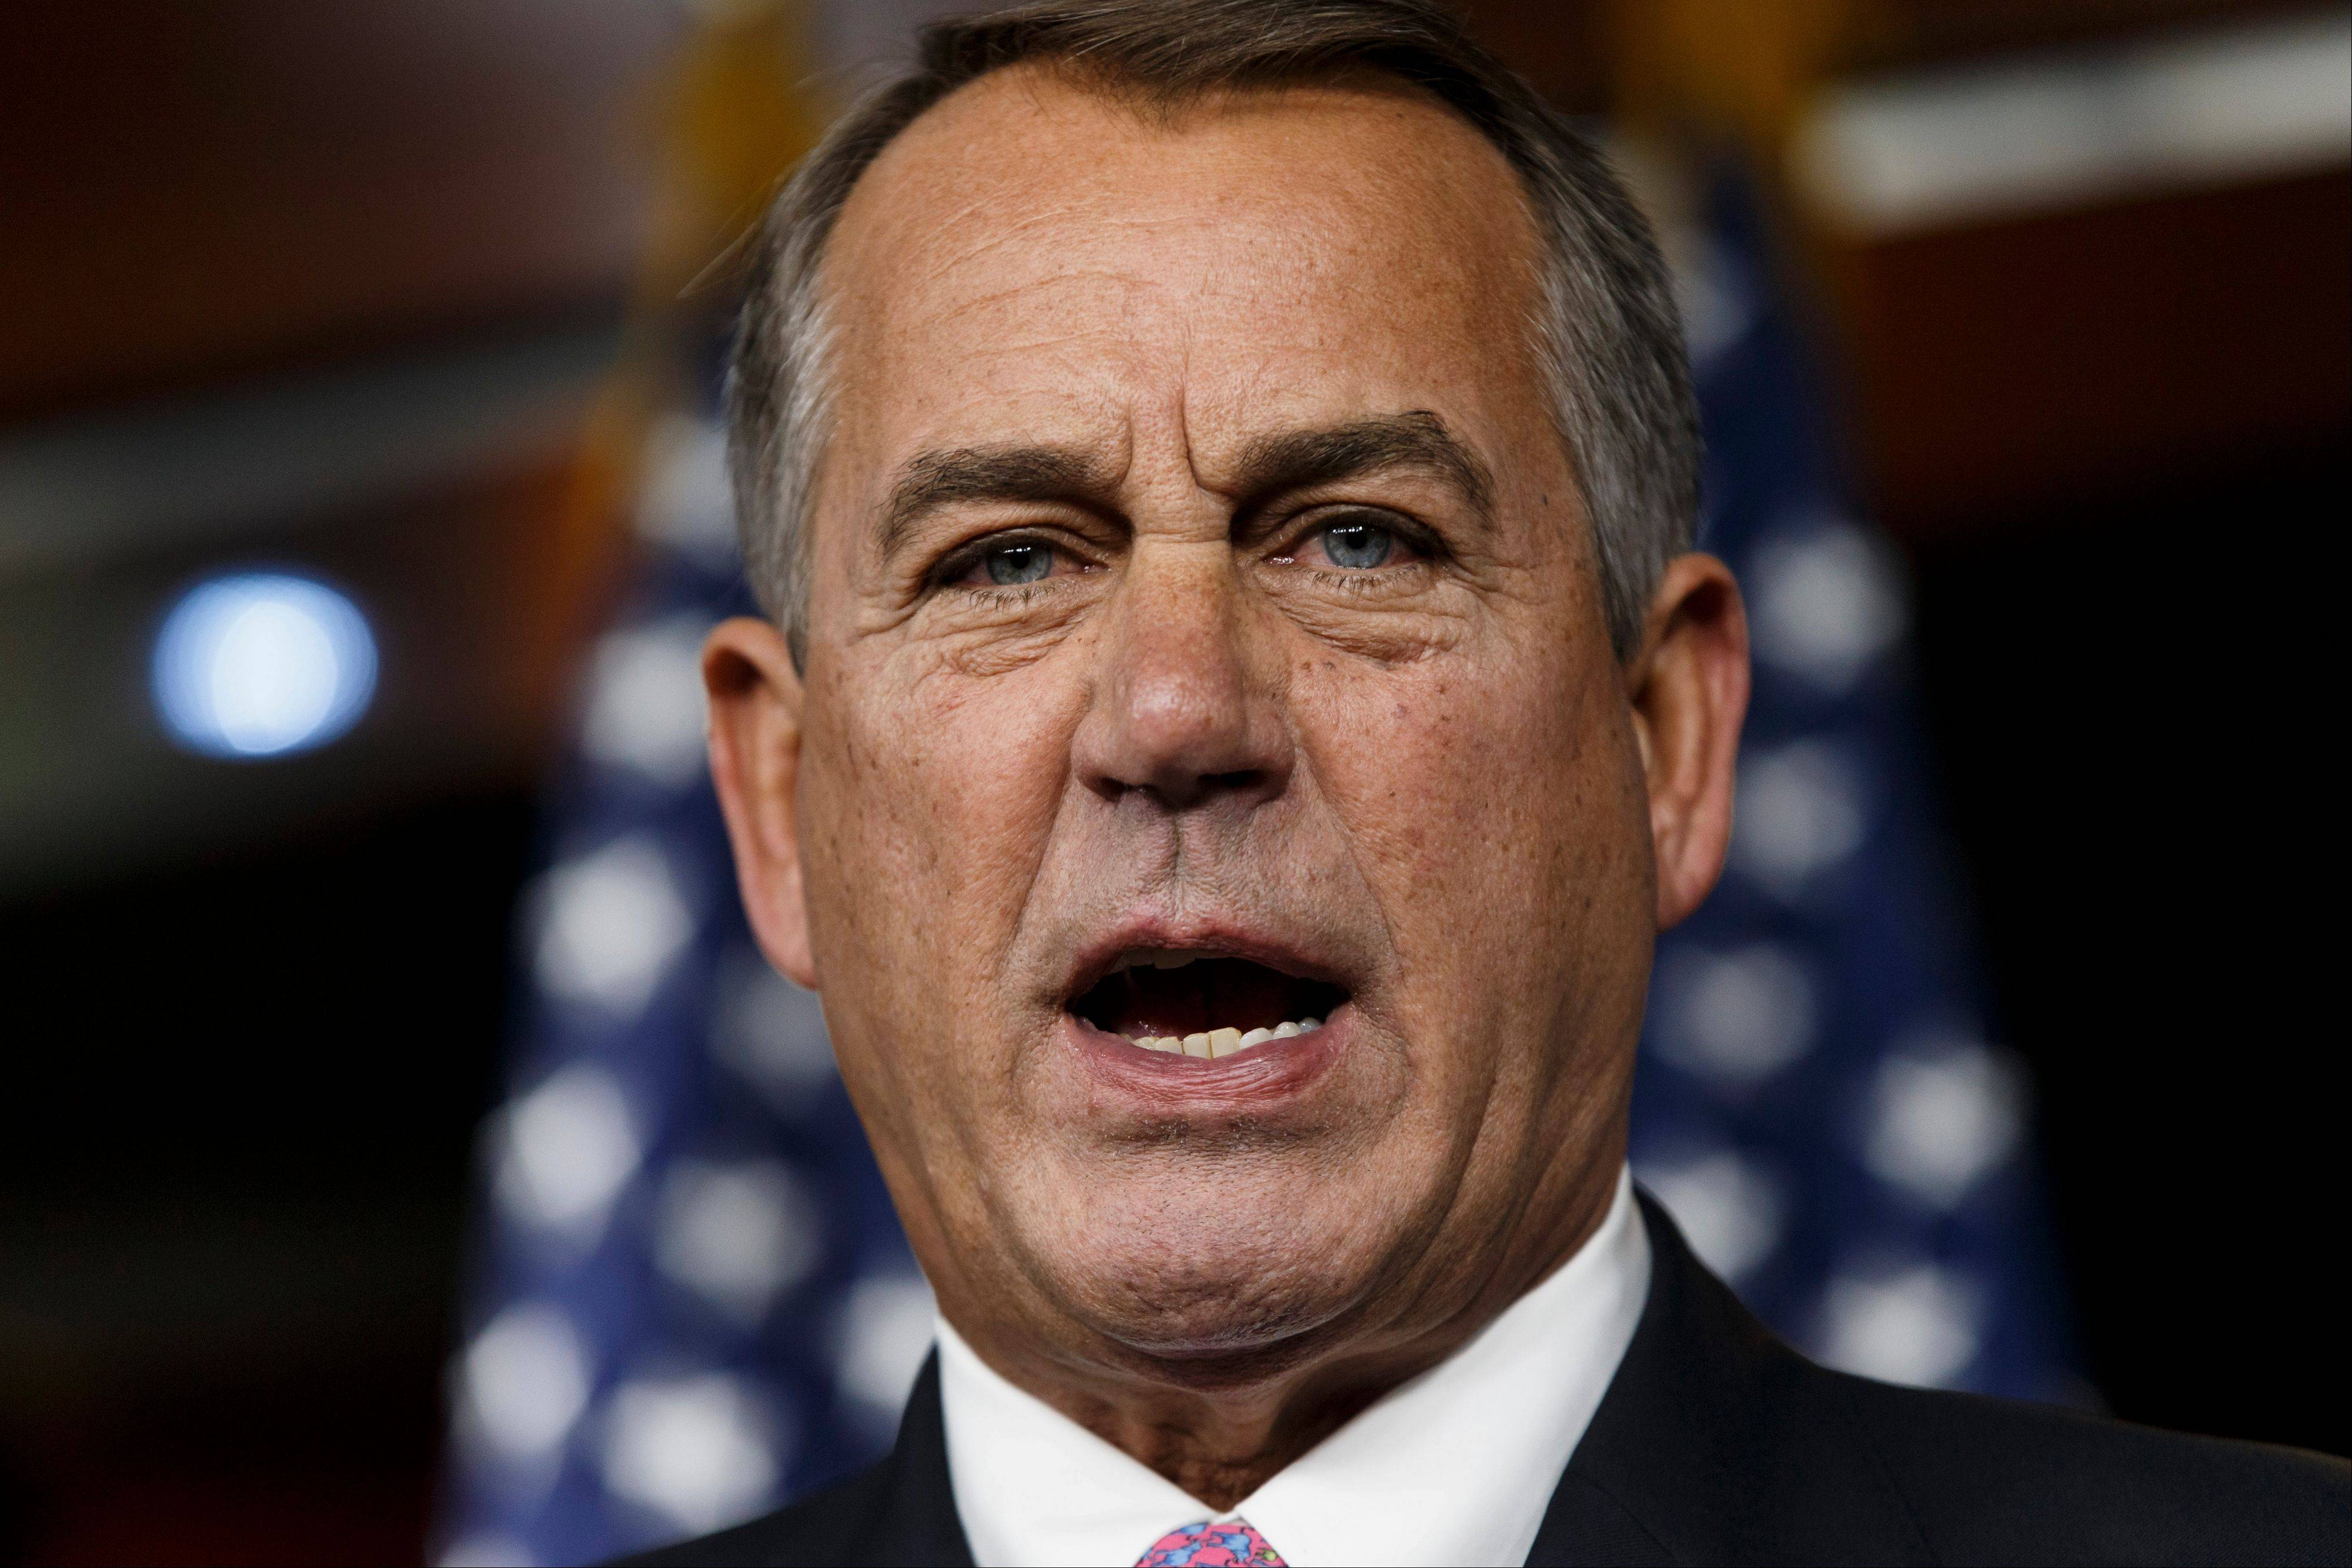 House Speaker John Boehner said Thursday it will be difficult to pass immigration legislation this year, dimming prospects for one of President Barack Obama�s top domestic priorities.